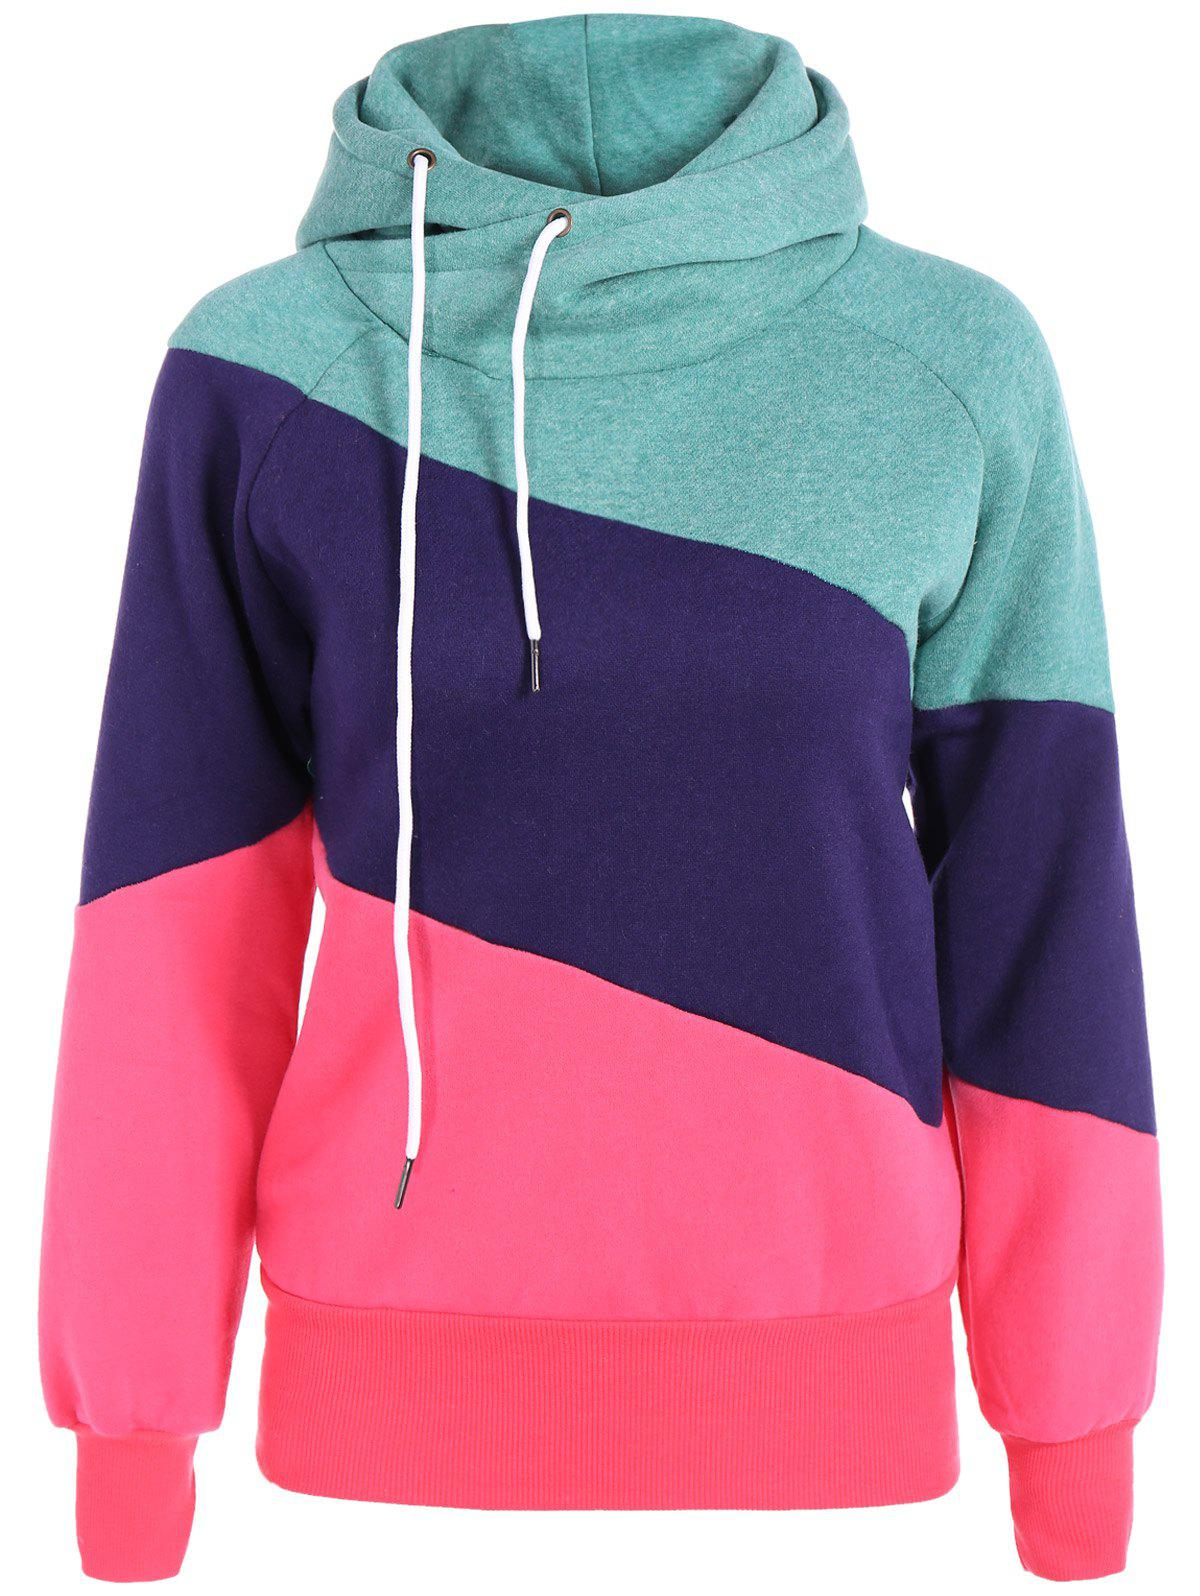 Casual Color Block Long Sleeves Hoodie For WomenWOMEN<br><br>Size: M; Color: RED; Material: Cotton Blend; Shirt Length: Regular; Sleeve Length: Full; Style: Casual; Pattern Style: Patchwork; Weight: 0.520kg; Package Contents: 1 x Hoodie;